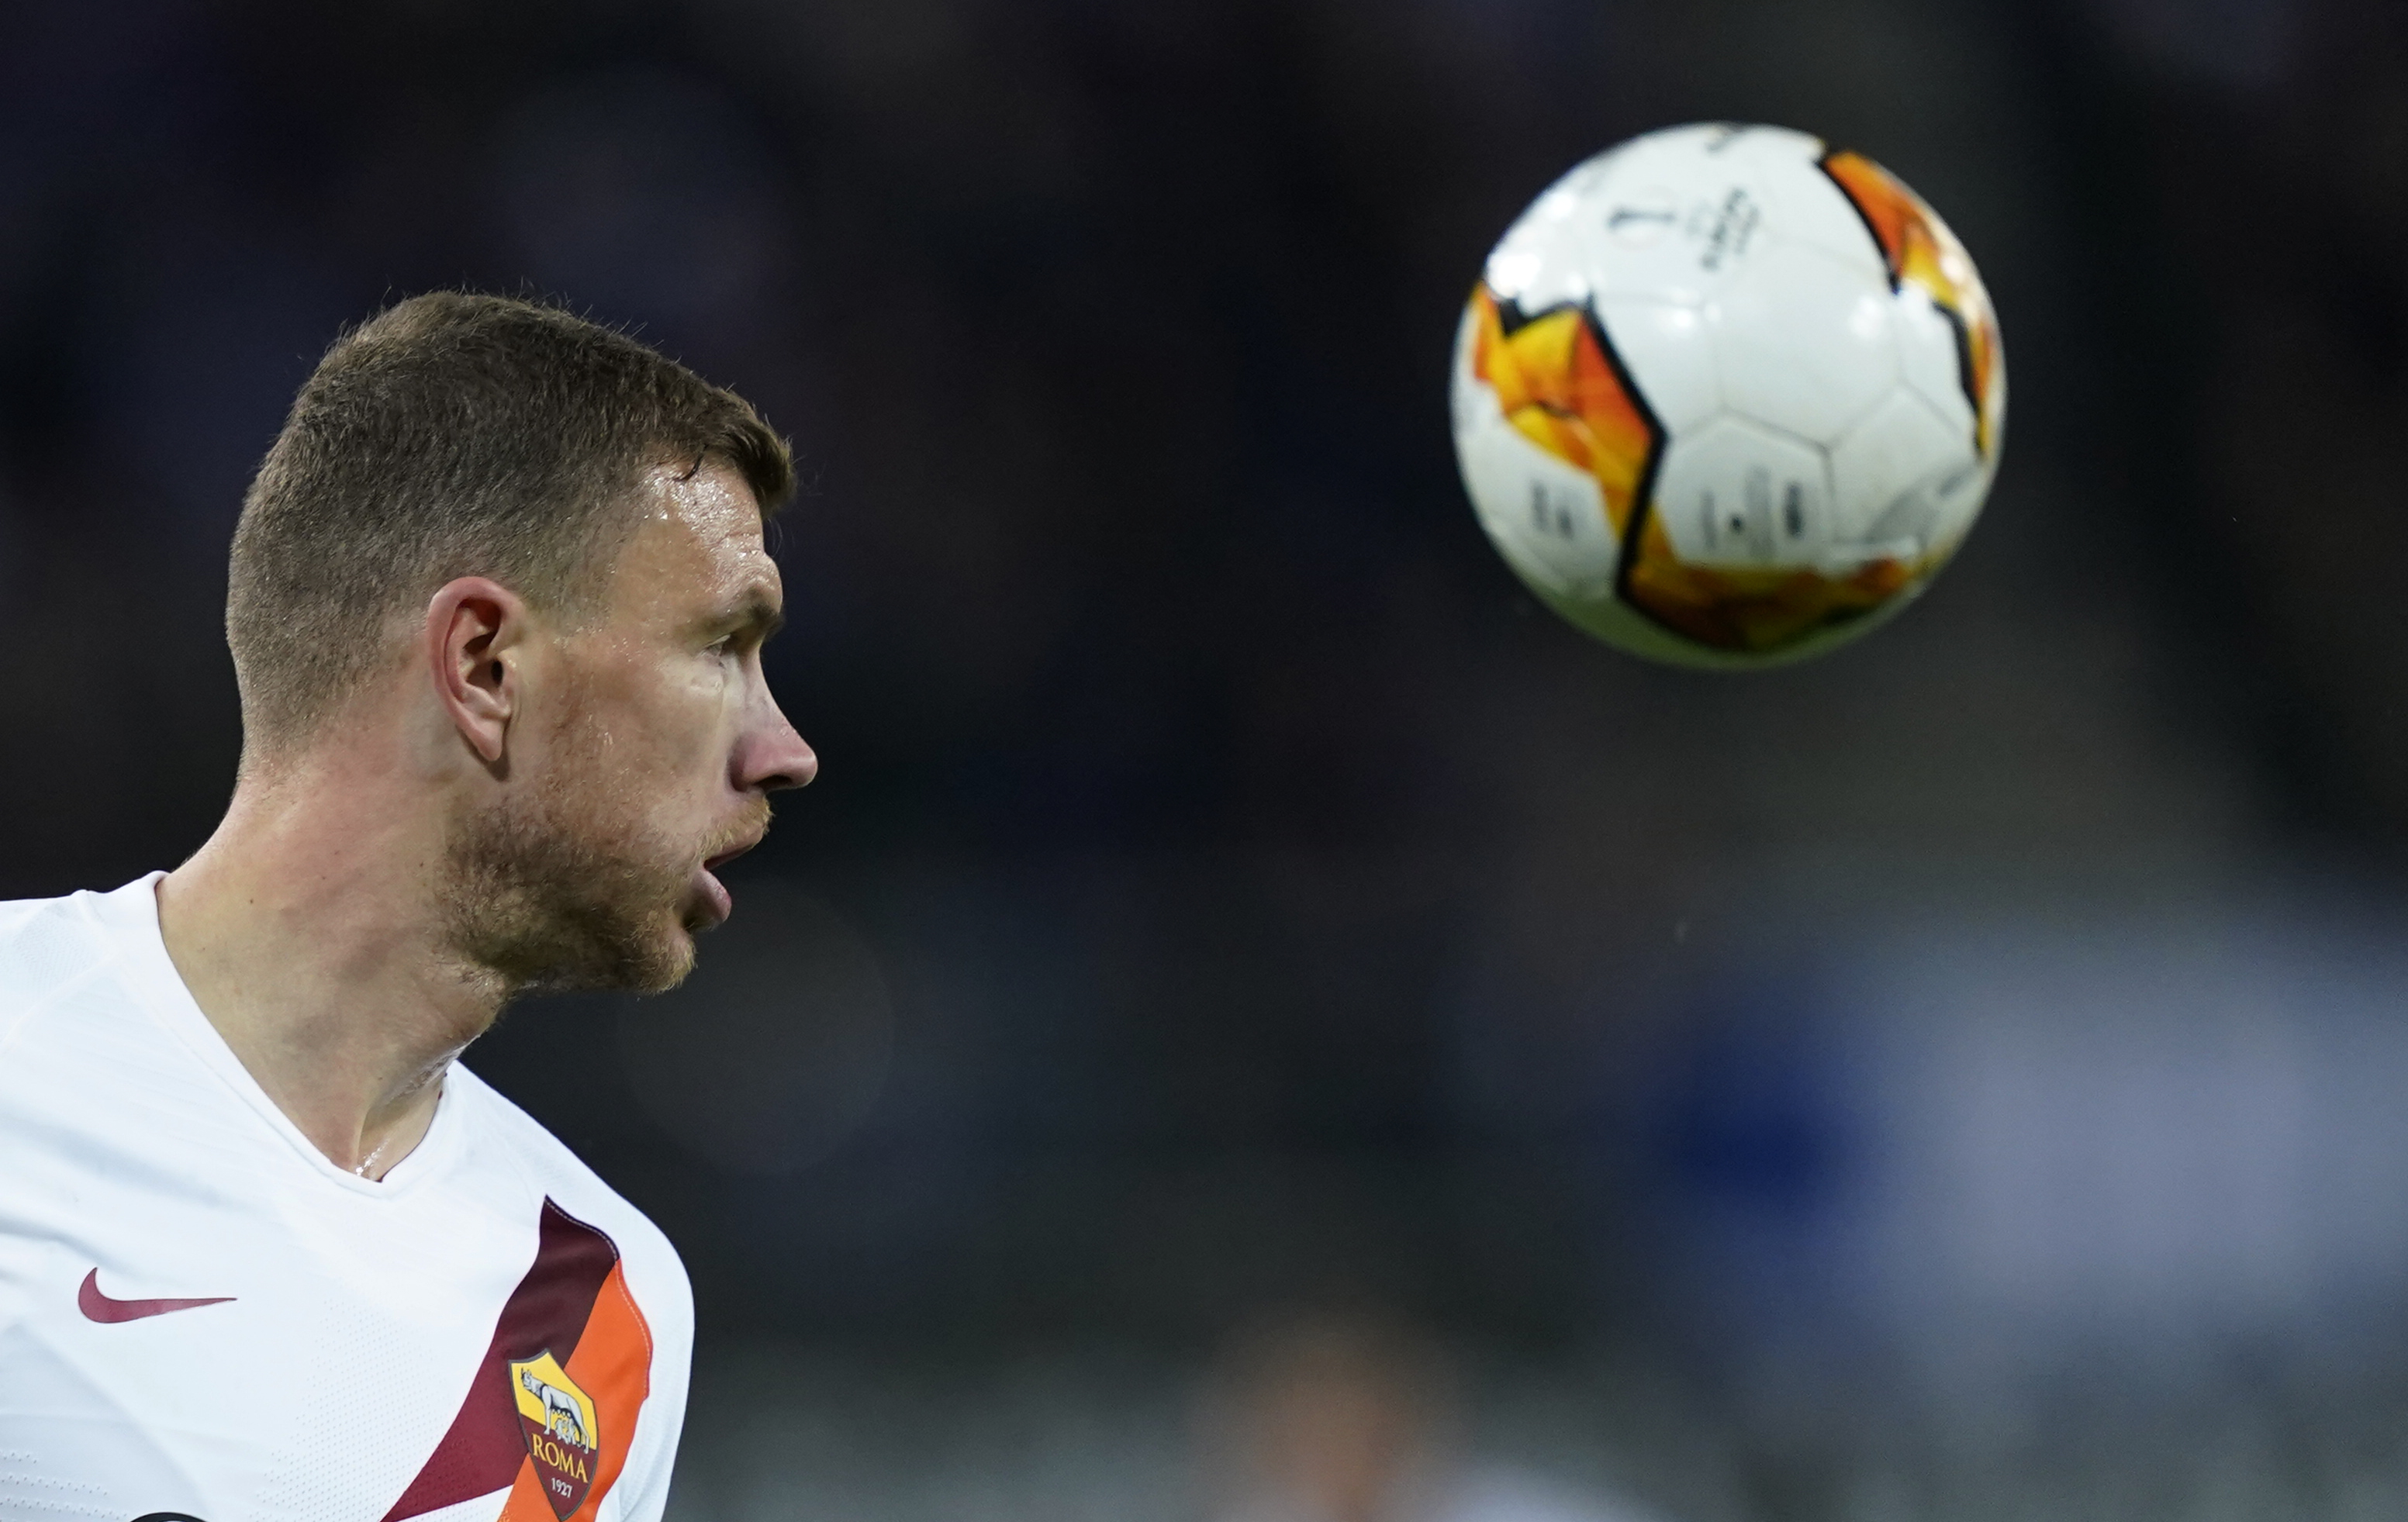 Southampton reportedly launched an offer for Dzeko who is seen in the photo